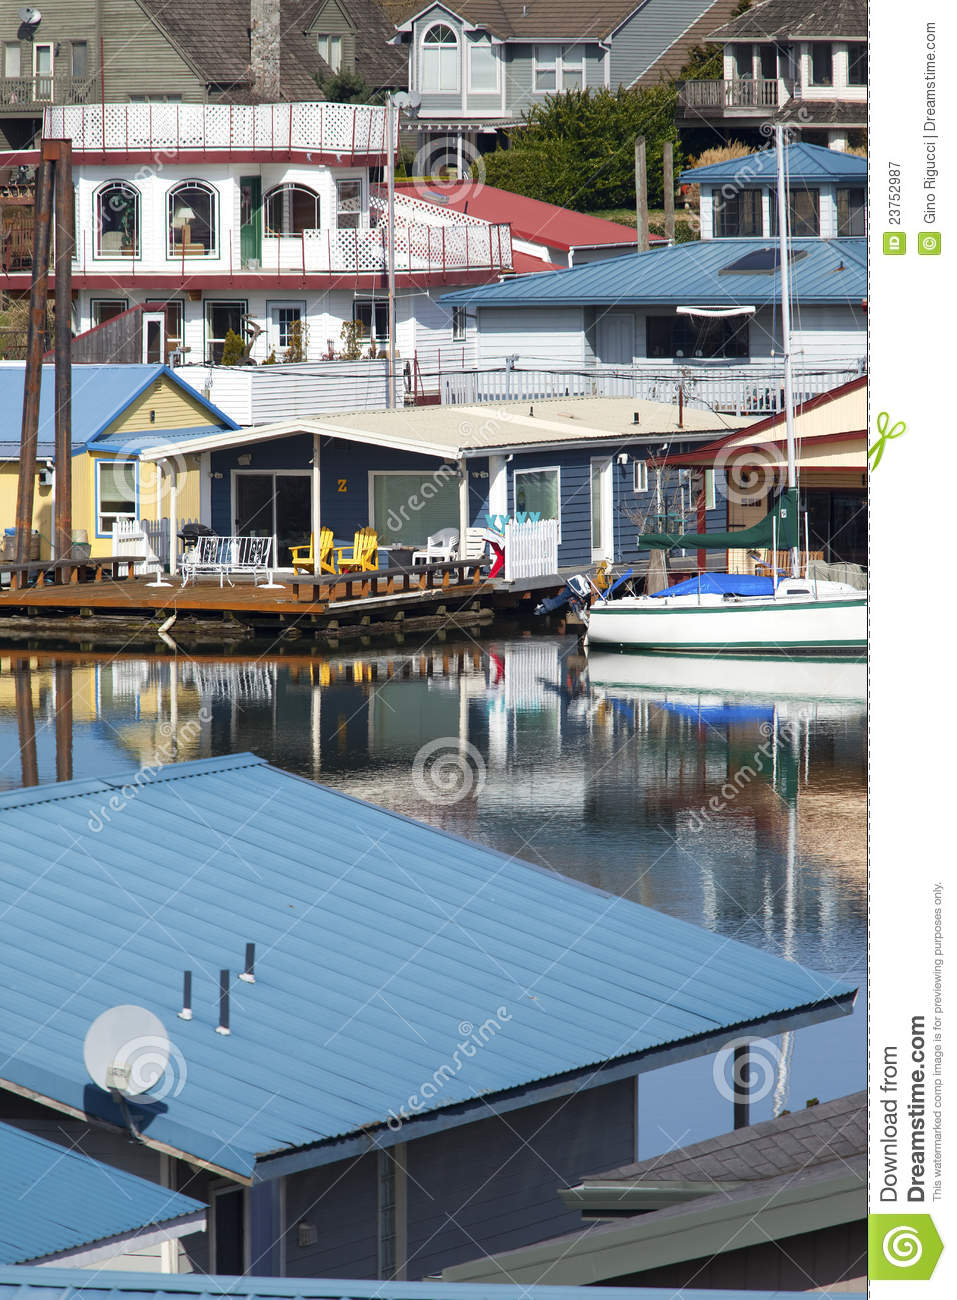 Floating homes portland or royalty free stock photography Floating homes portland